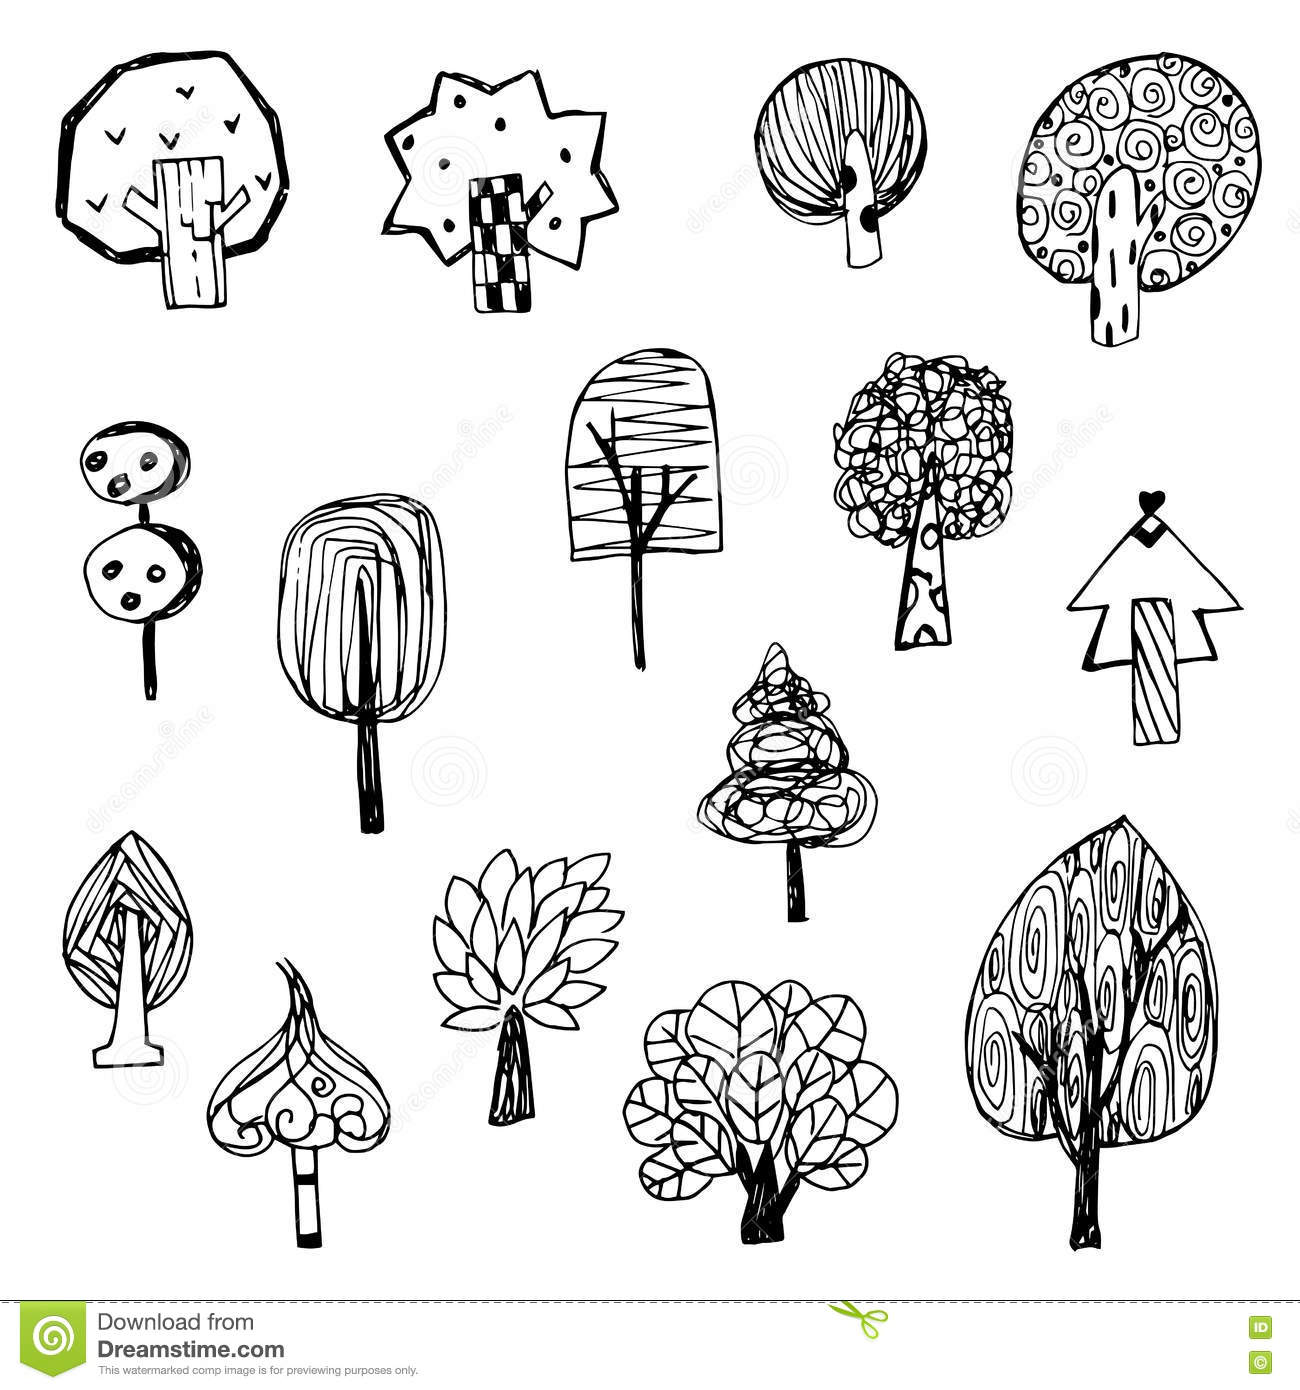 Art of tree vector from free hand drawing design on white for Cute tree drawing